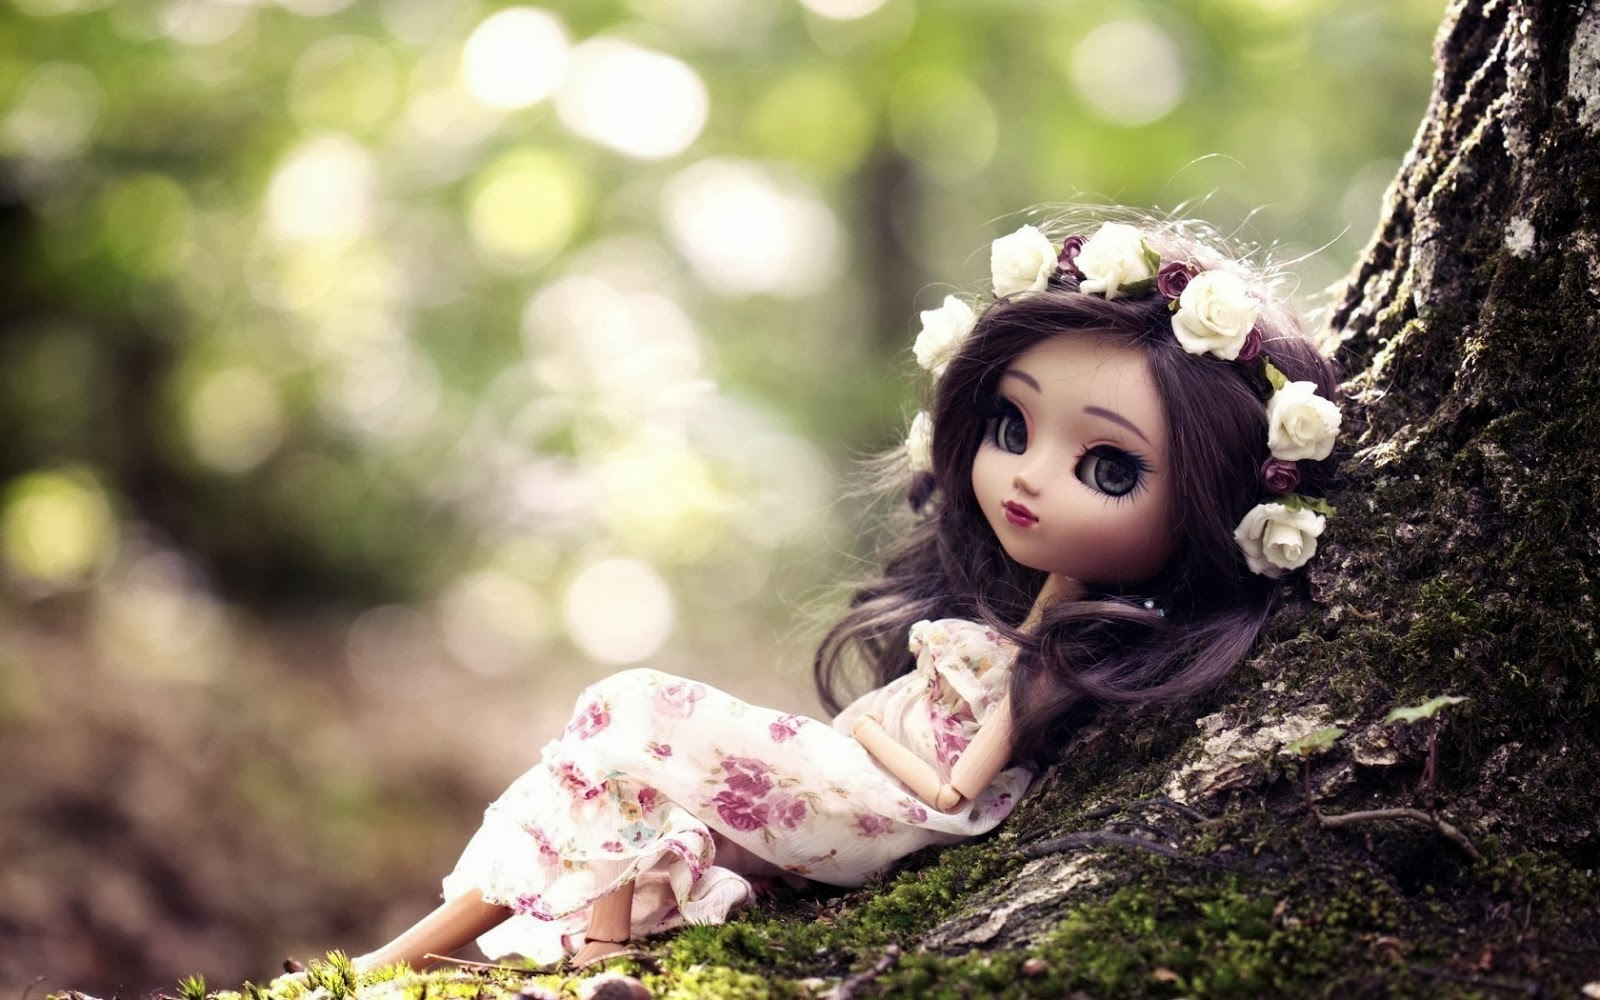 Love Very cute Wallpaper : Very cute Doll Wallpapers - WallpaperSafari